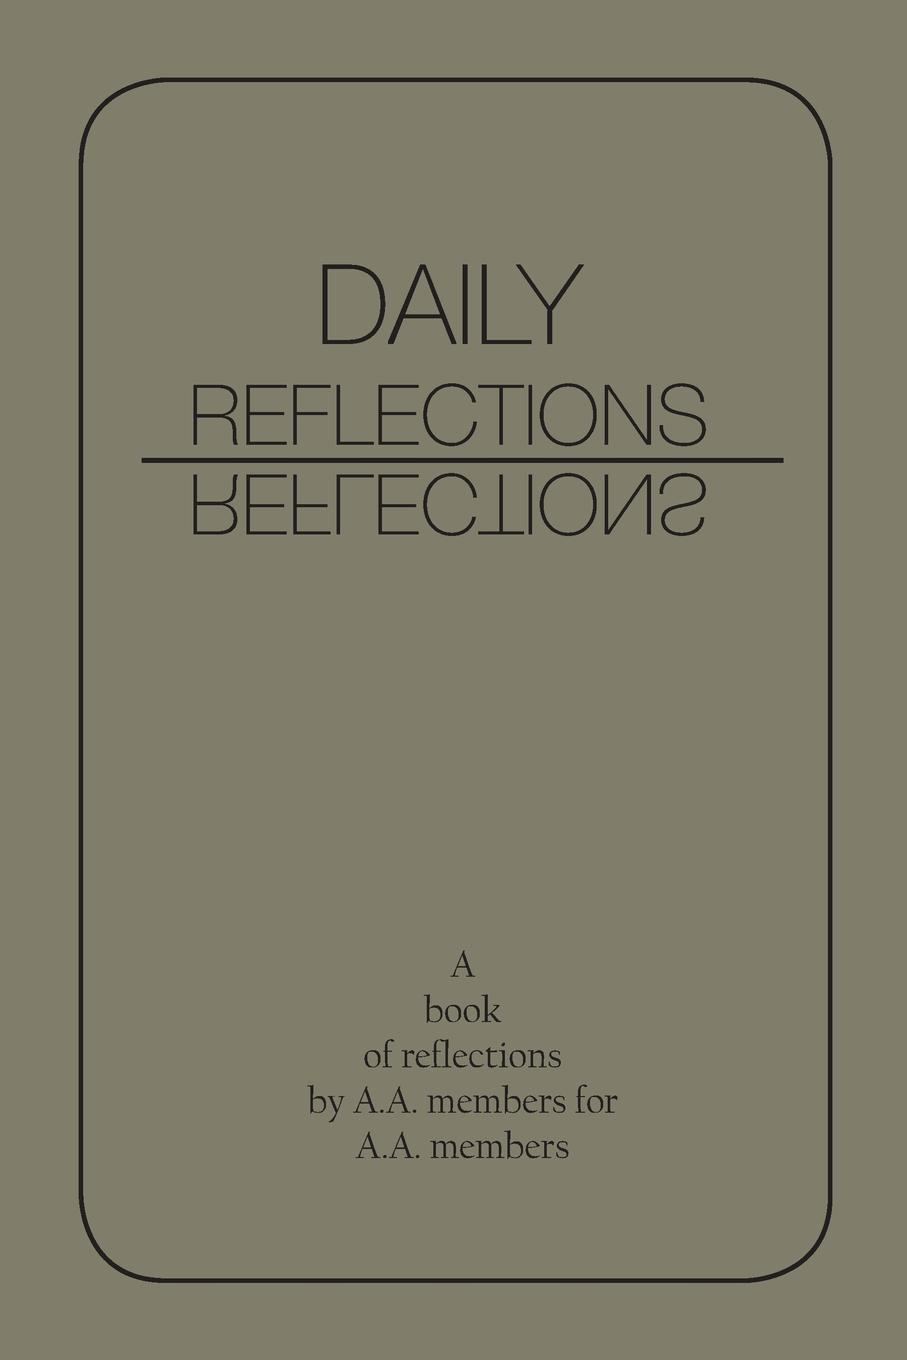 A.A., AA World Services Inc Daily Reflections. A Book of Reflections by A.A. Members for A.A. Members